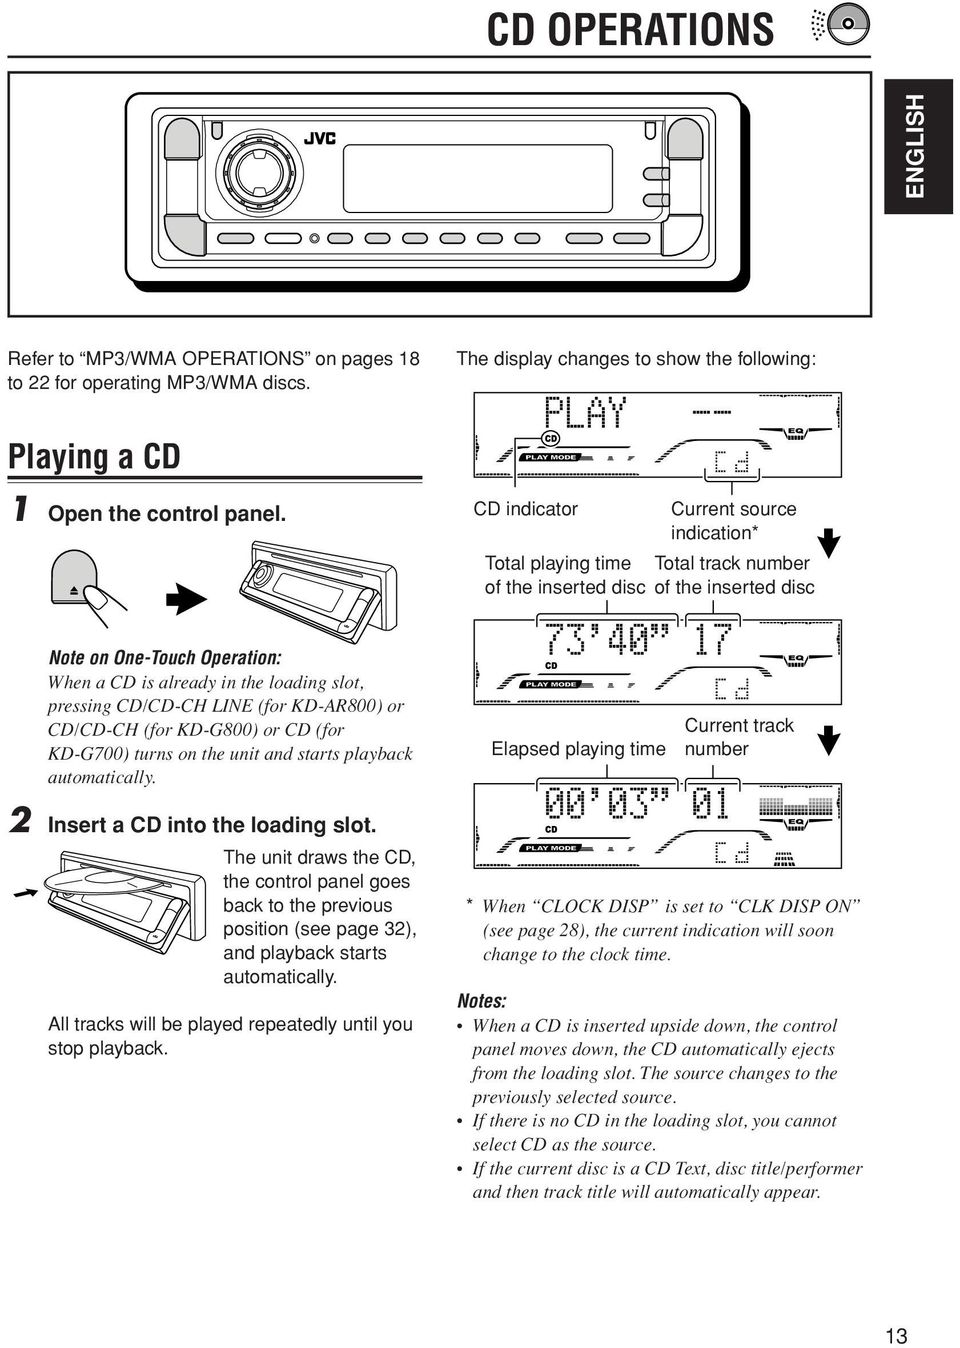 CD/CD-CH LINE (for KD-AR800) or CD/CD-CH (for KD-G800) or CD (for KD-G700) turns on the unit and starts playback automatically.